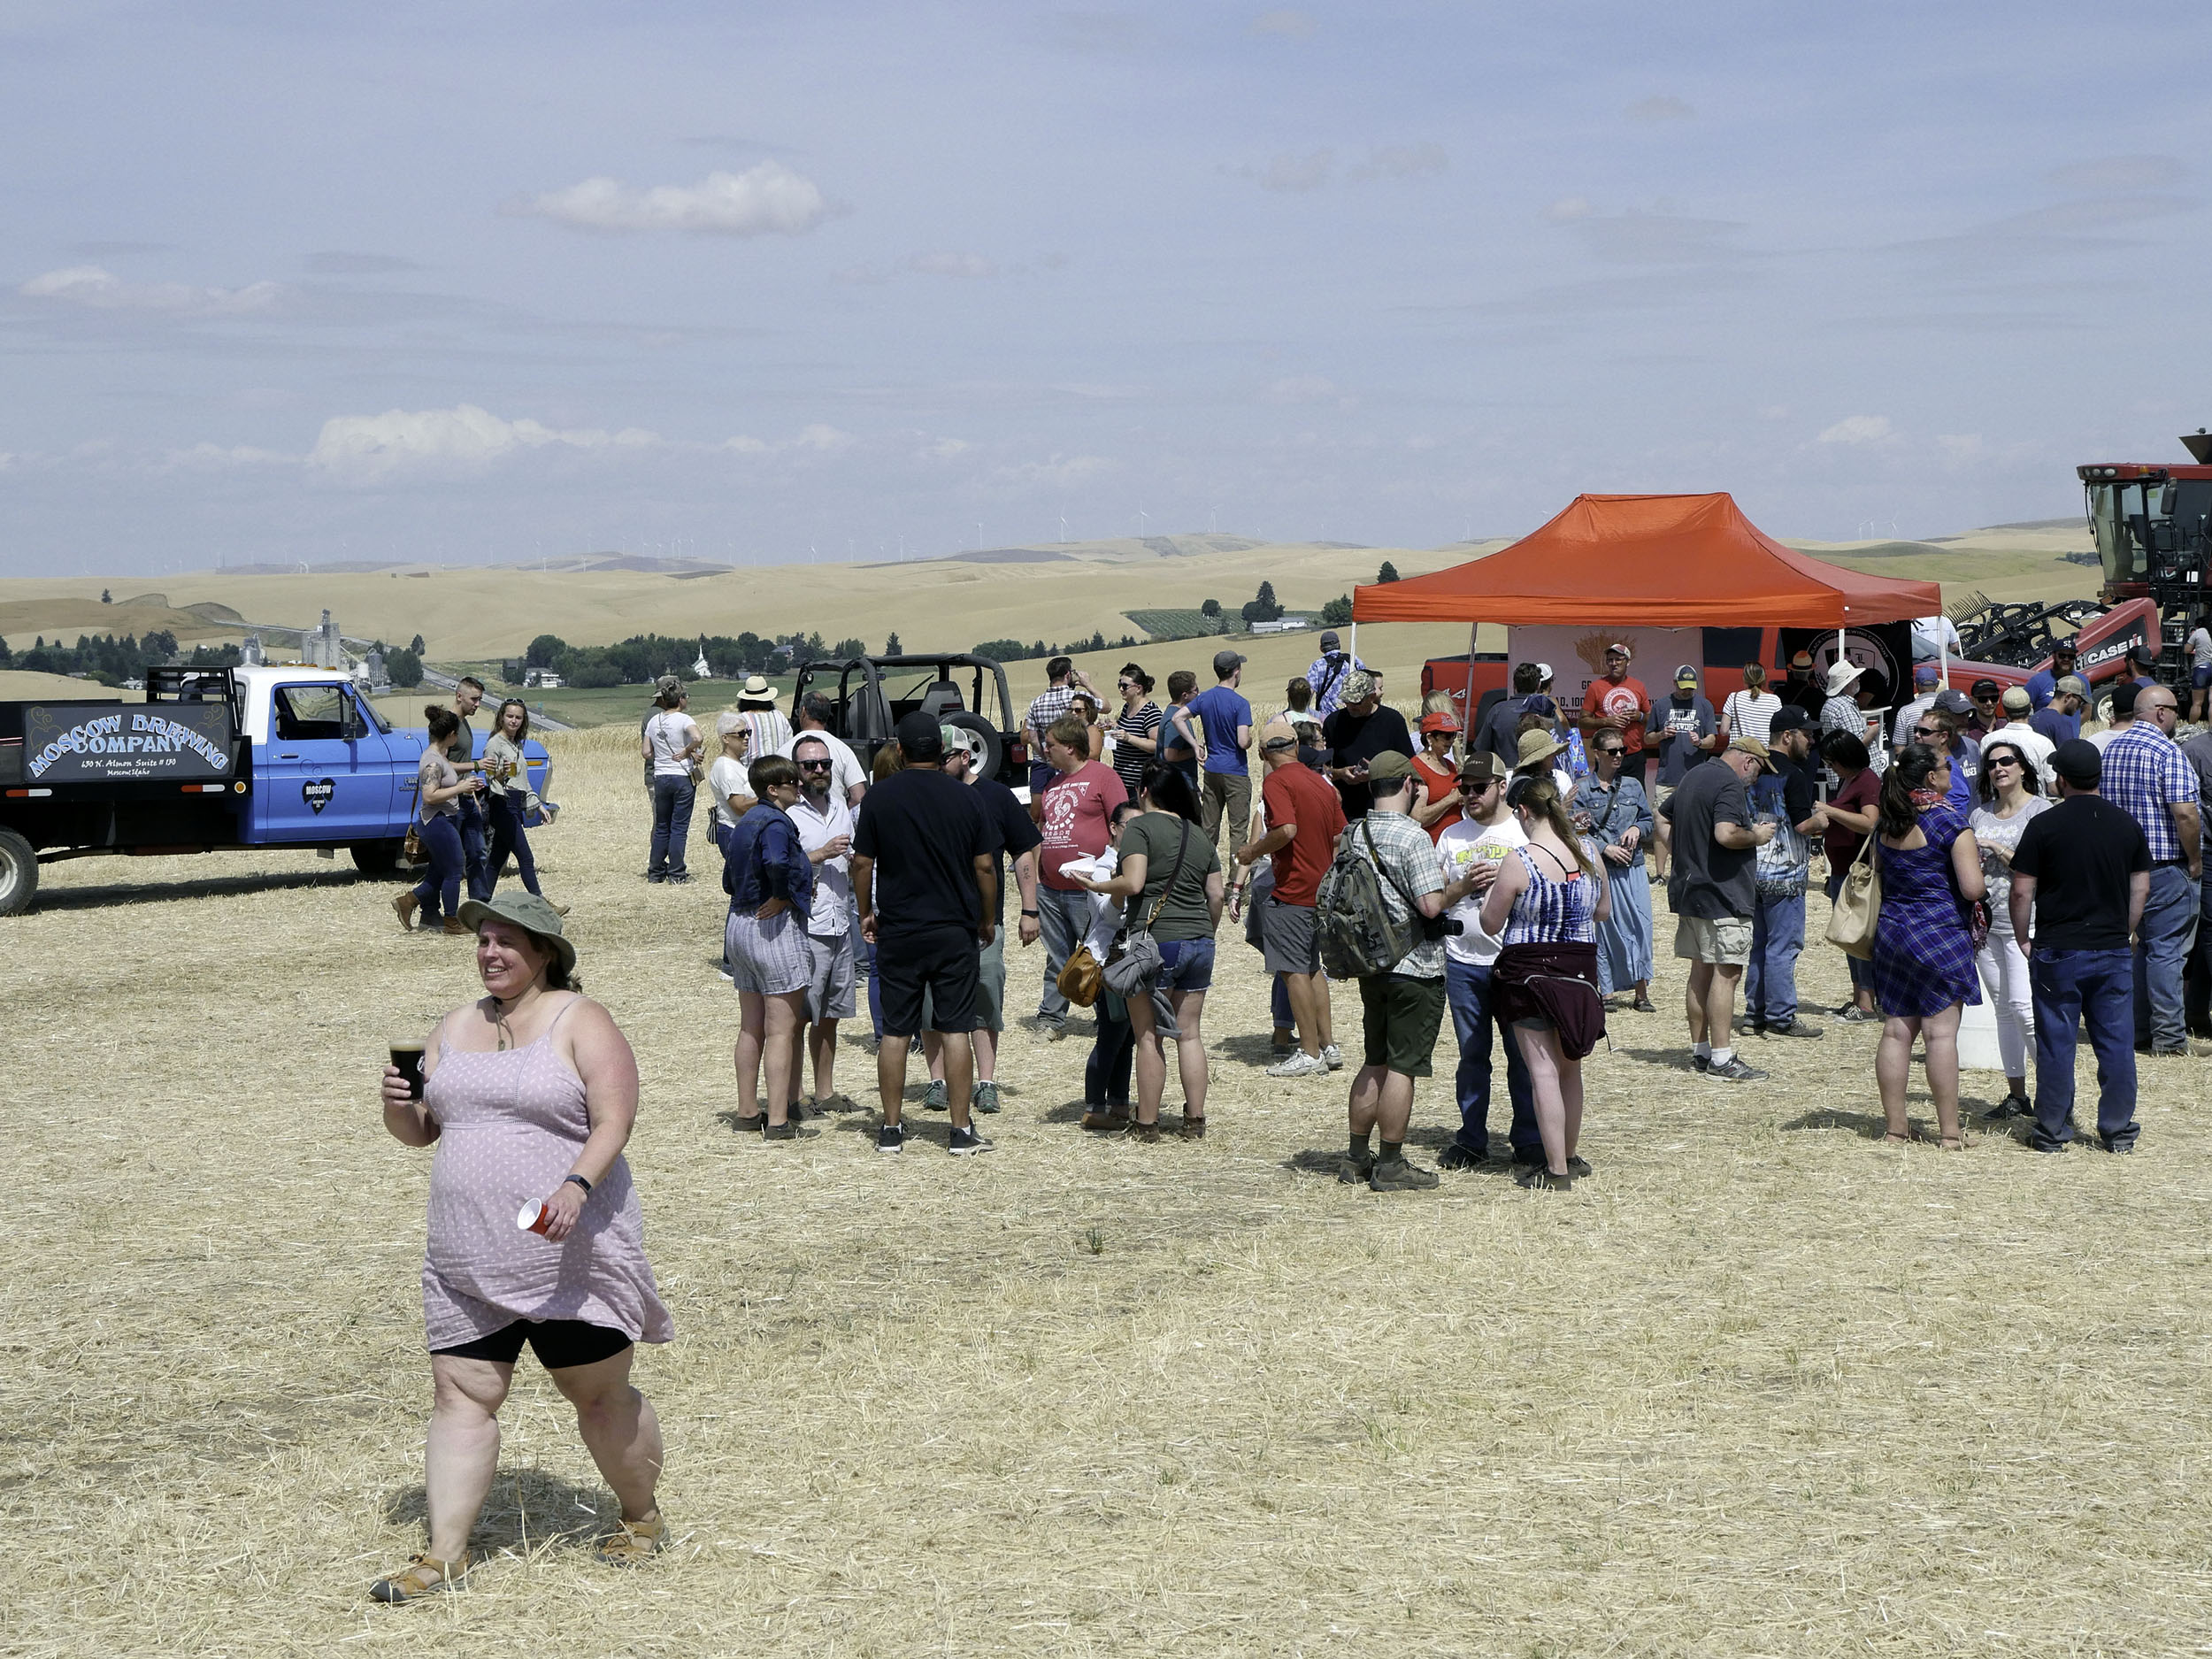 People gather at a beer festival in Eastern WA